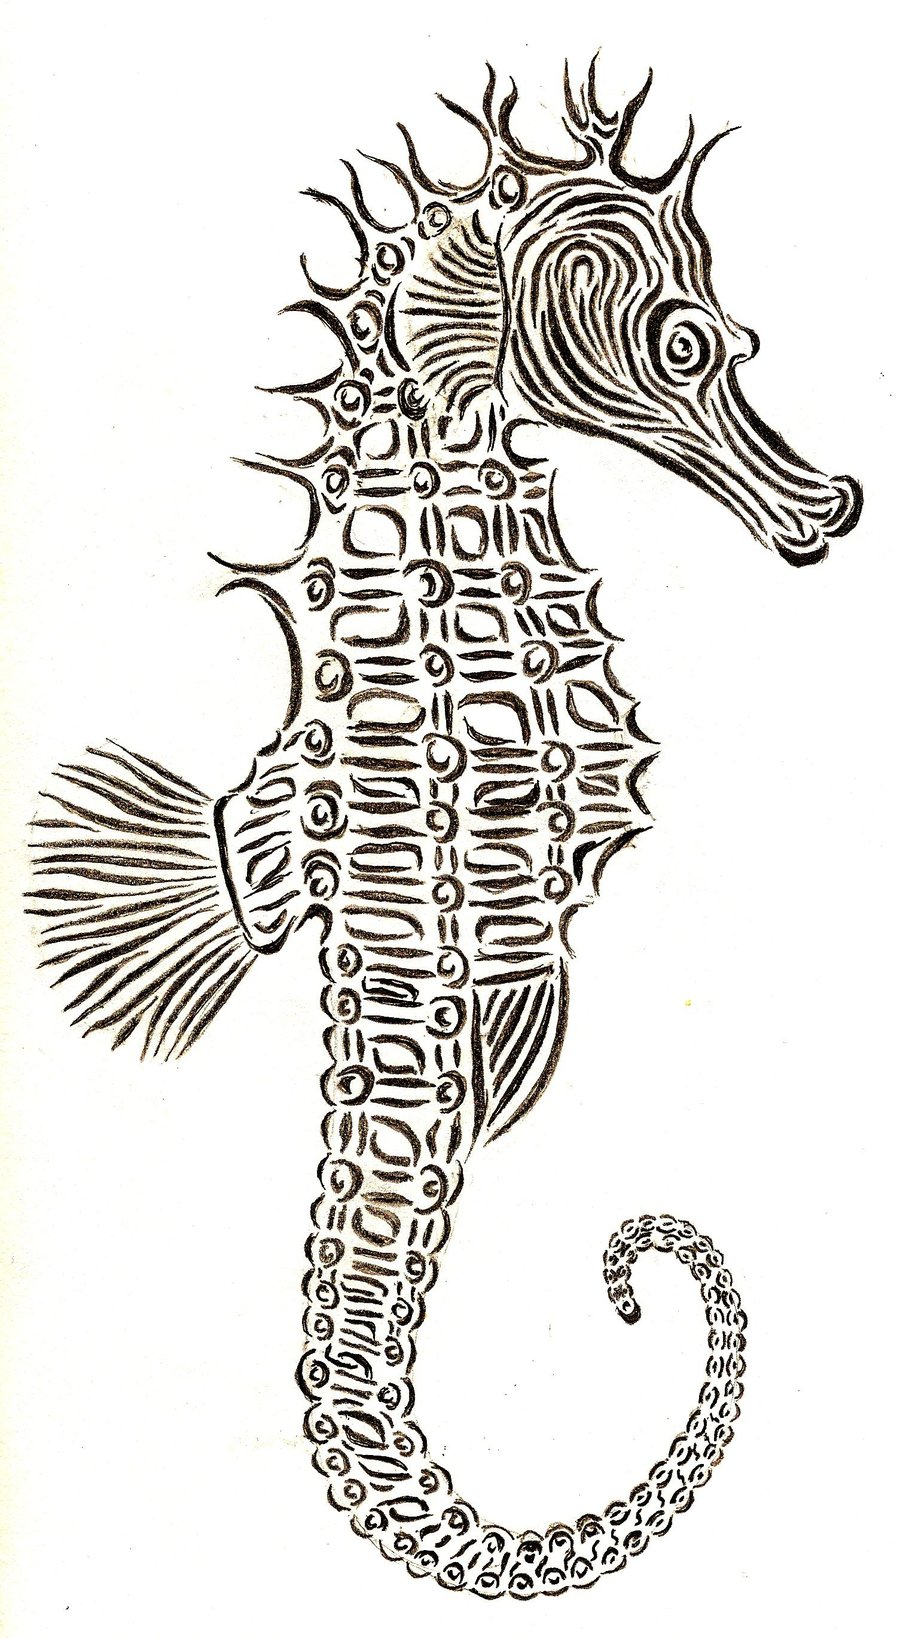 Drawn seahorse tribal Drawing Tribal Tribal Drawing seahorse